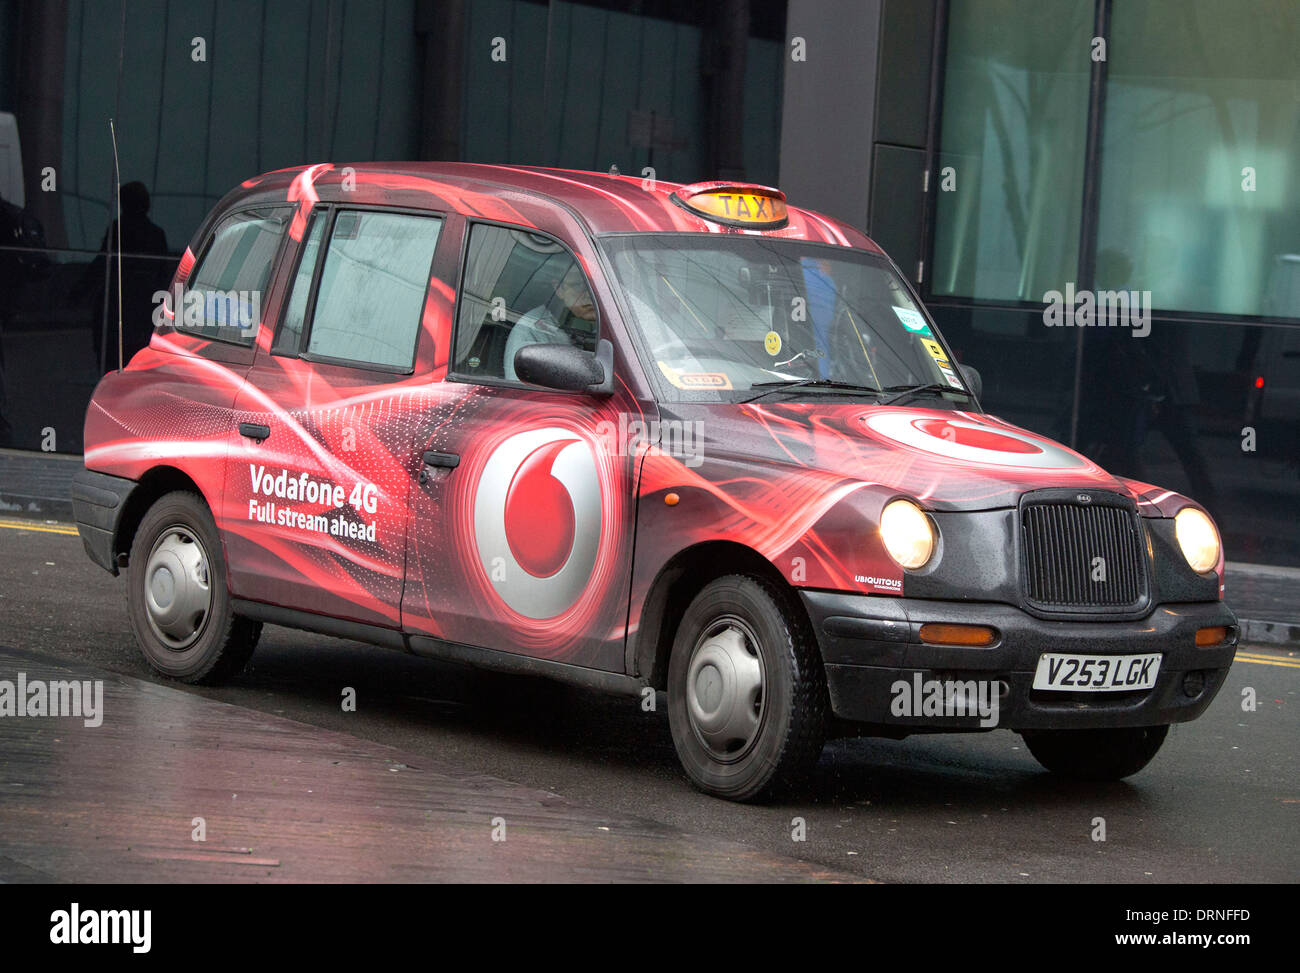 London Taxi cab with Vodafone 4g livery advert - Stock Image